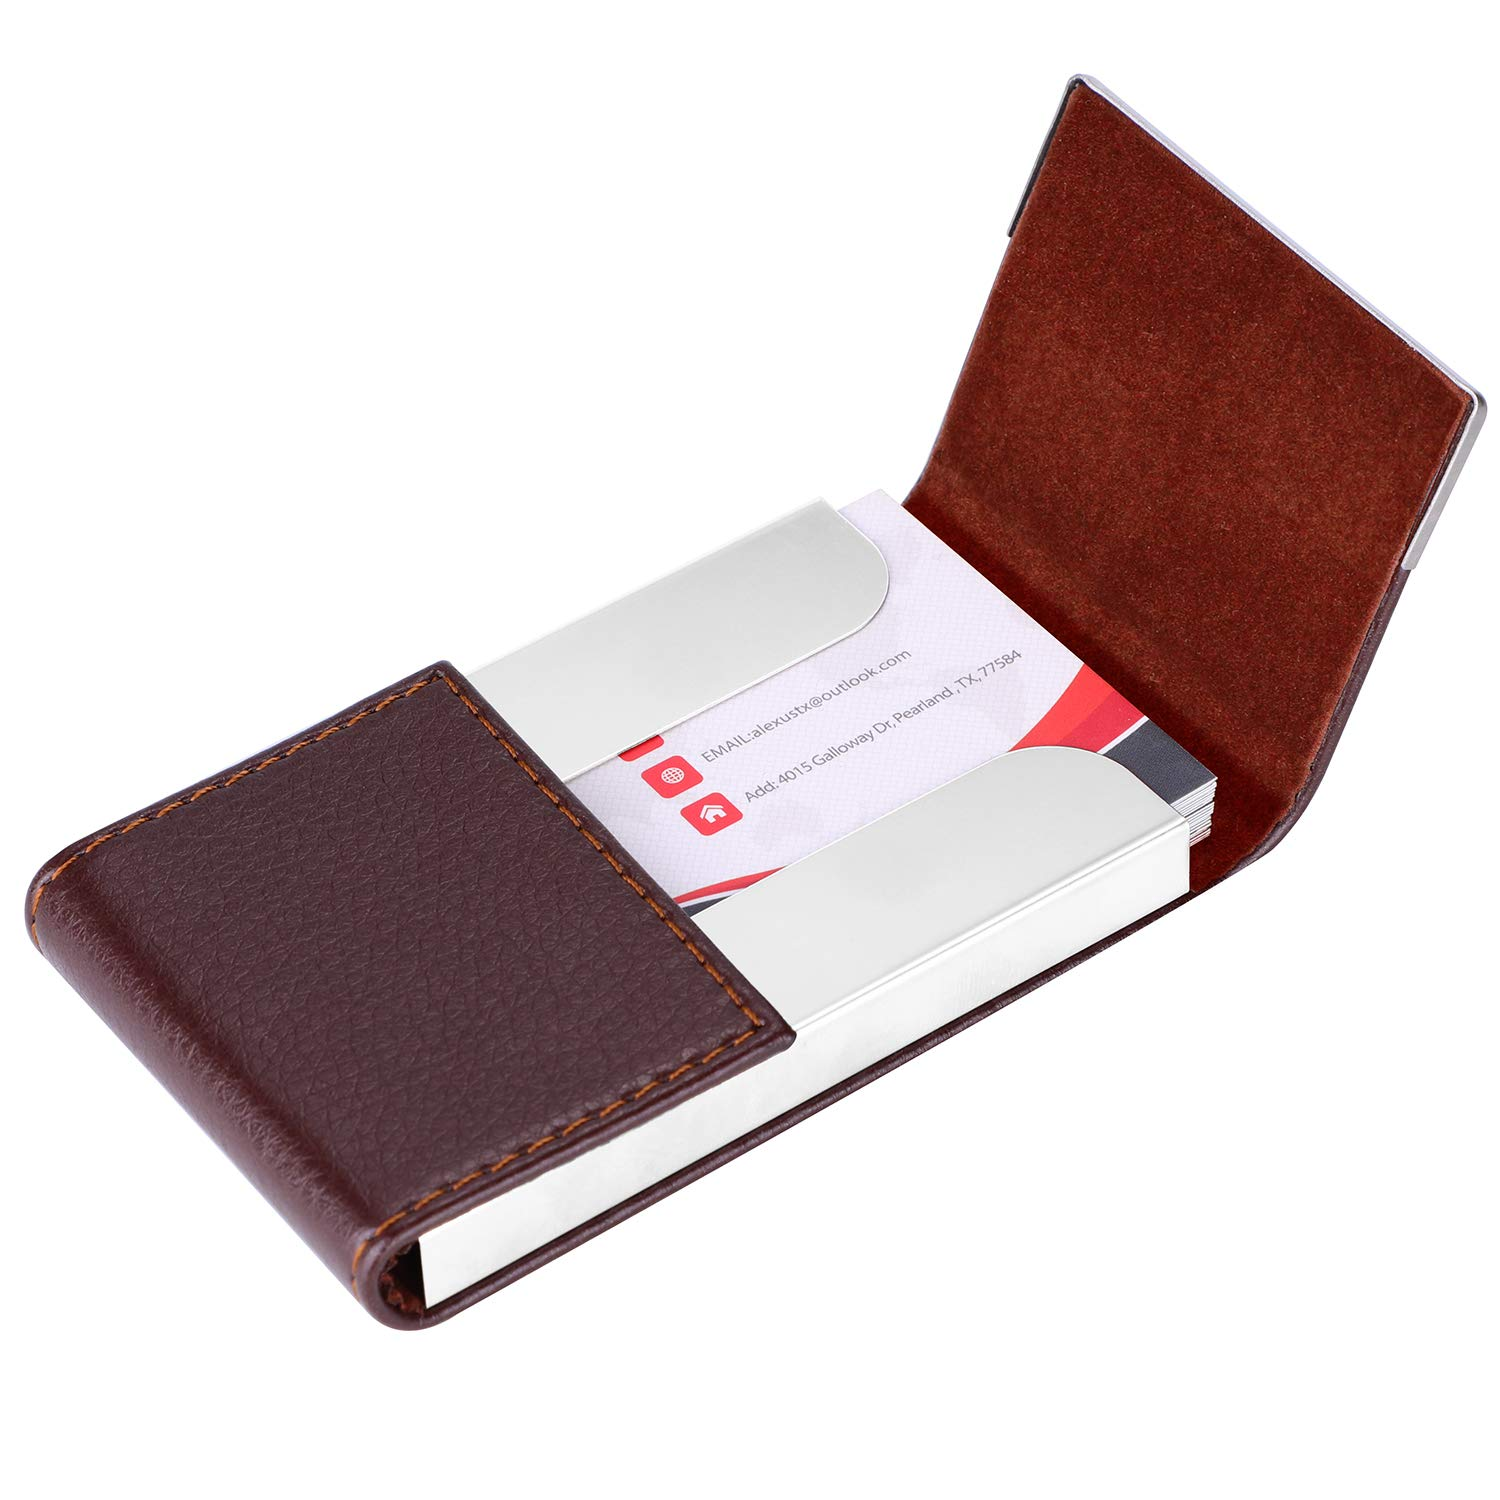 6c0d54223e37 MaxGear PU Leather Business Card Holder Name Card Case Credit Card Holder  Magnetic Shut Double Side Open Card Case Professional Business Card Holder  for ...